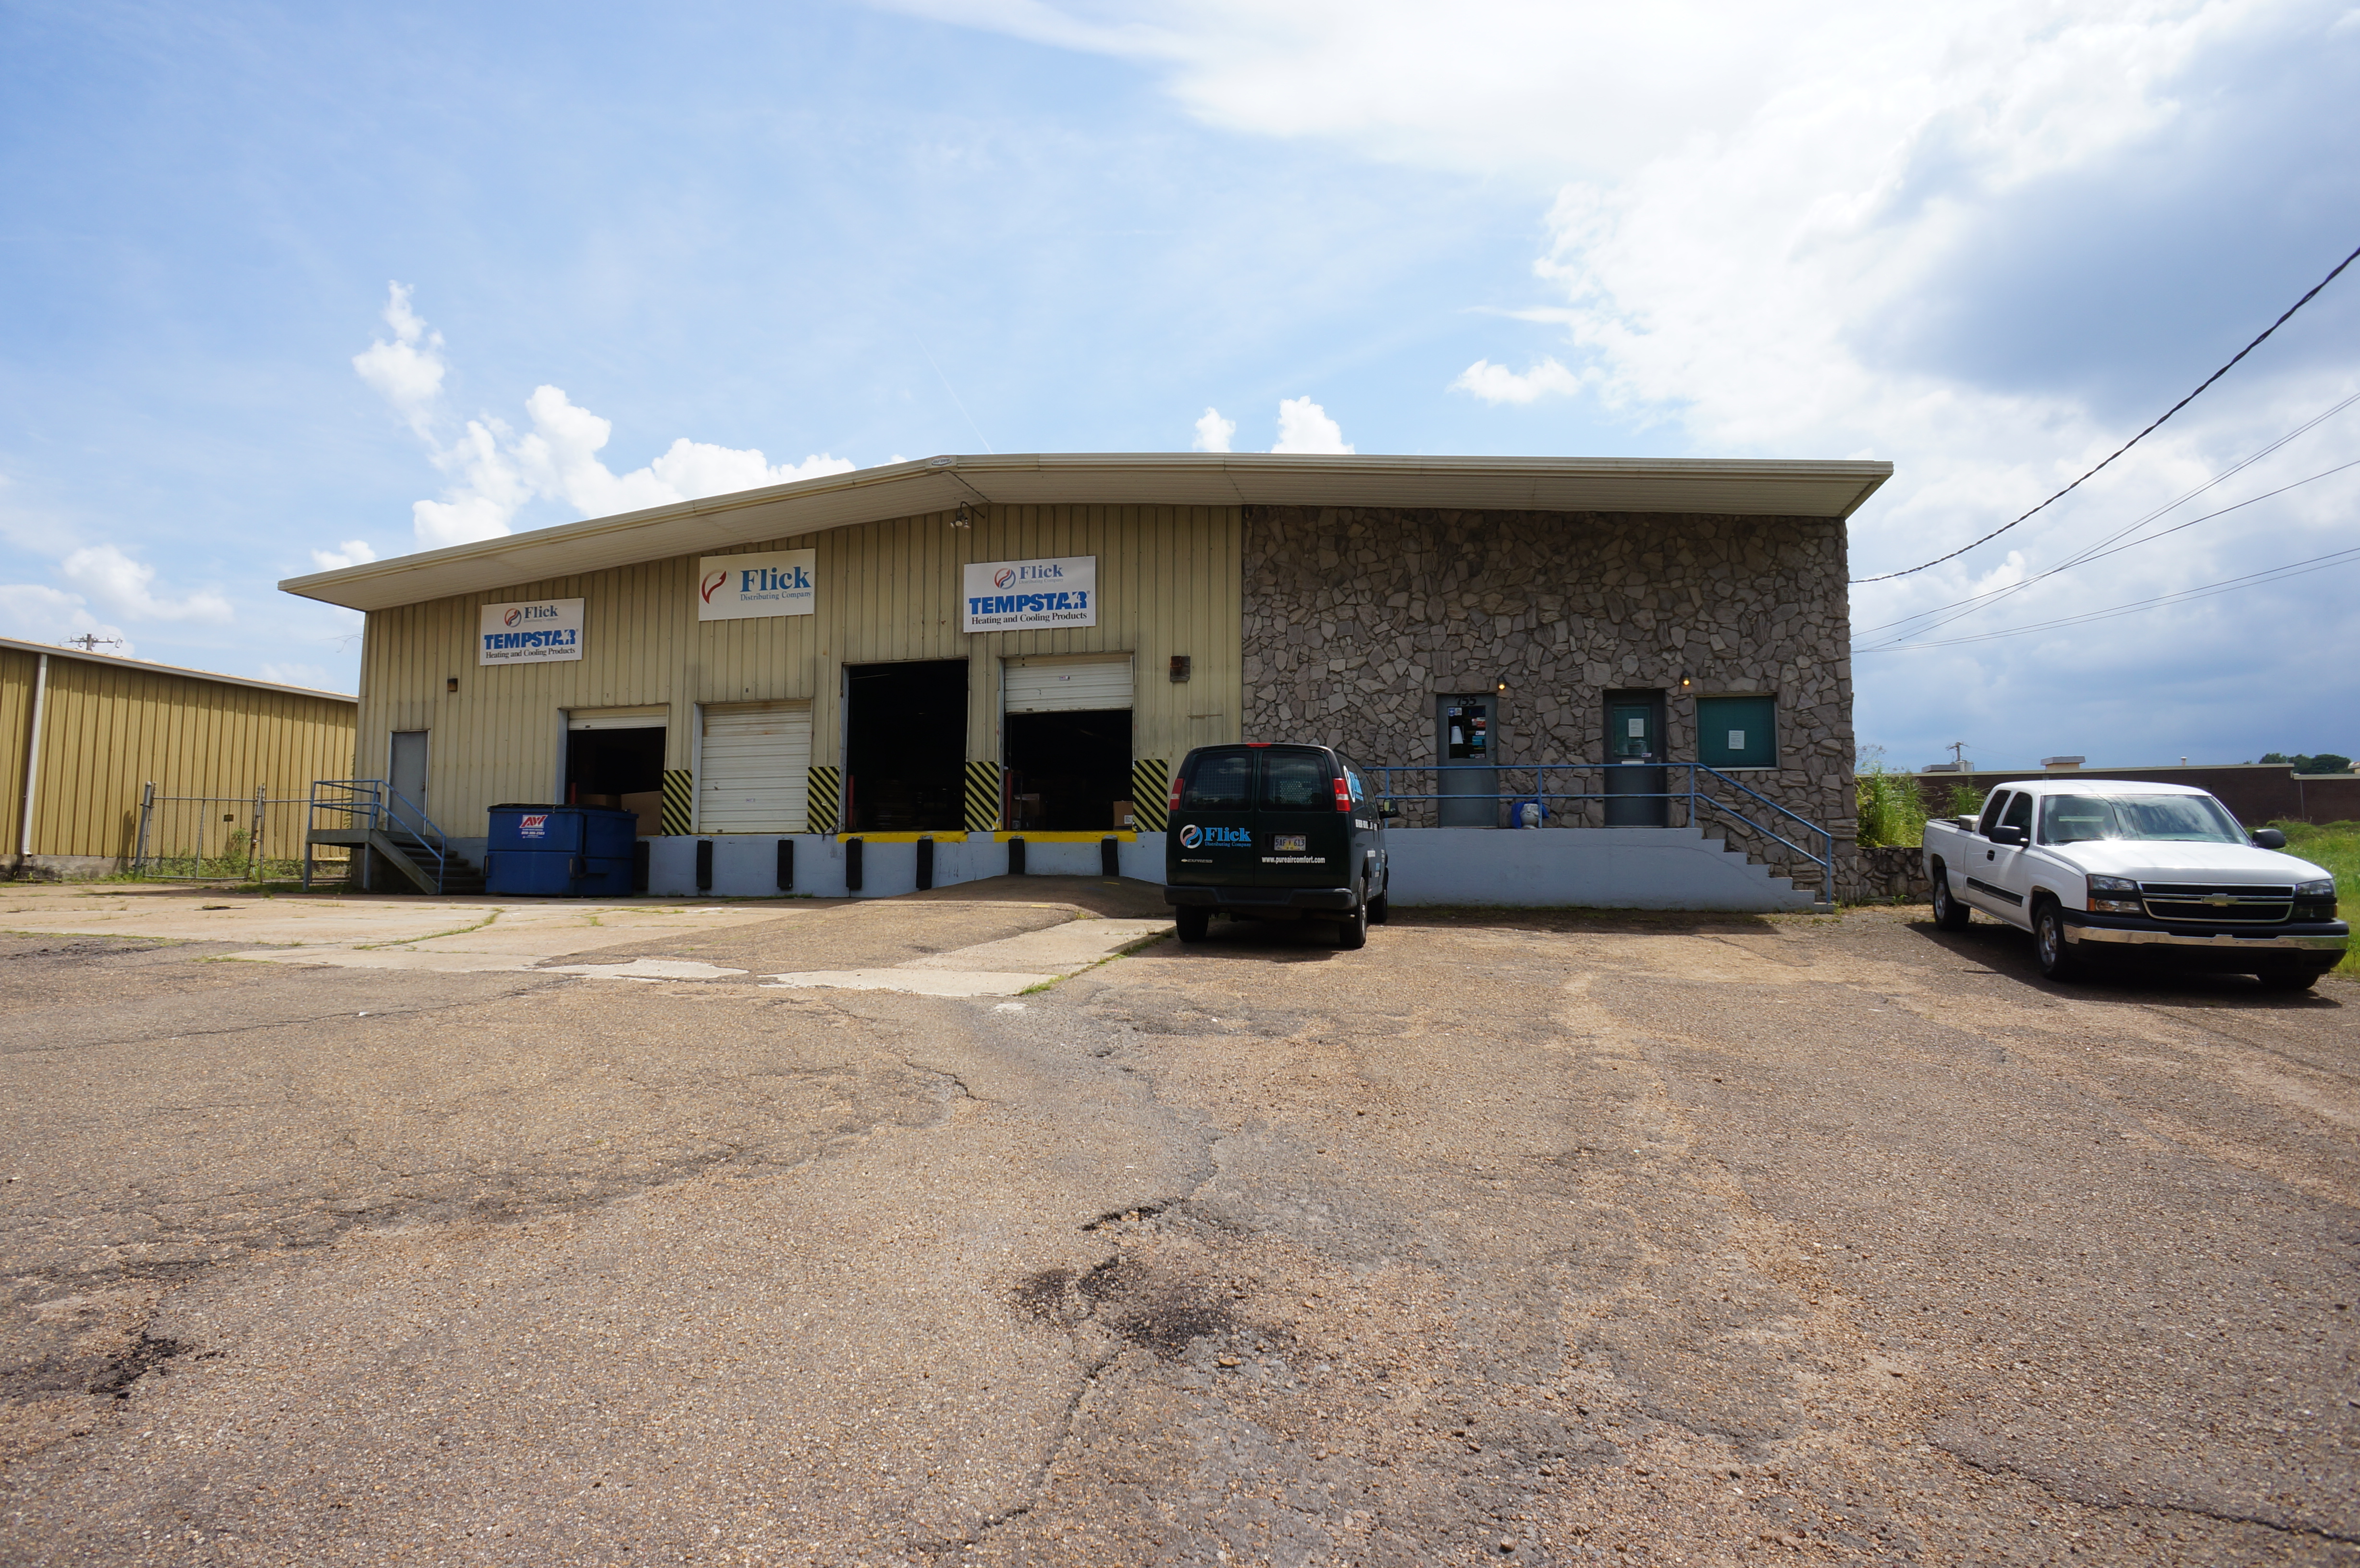 real estate office garage for space northwest arkansas img sale commercial sf